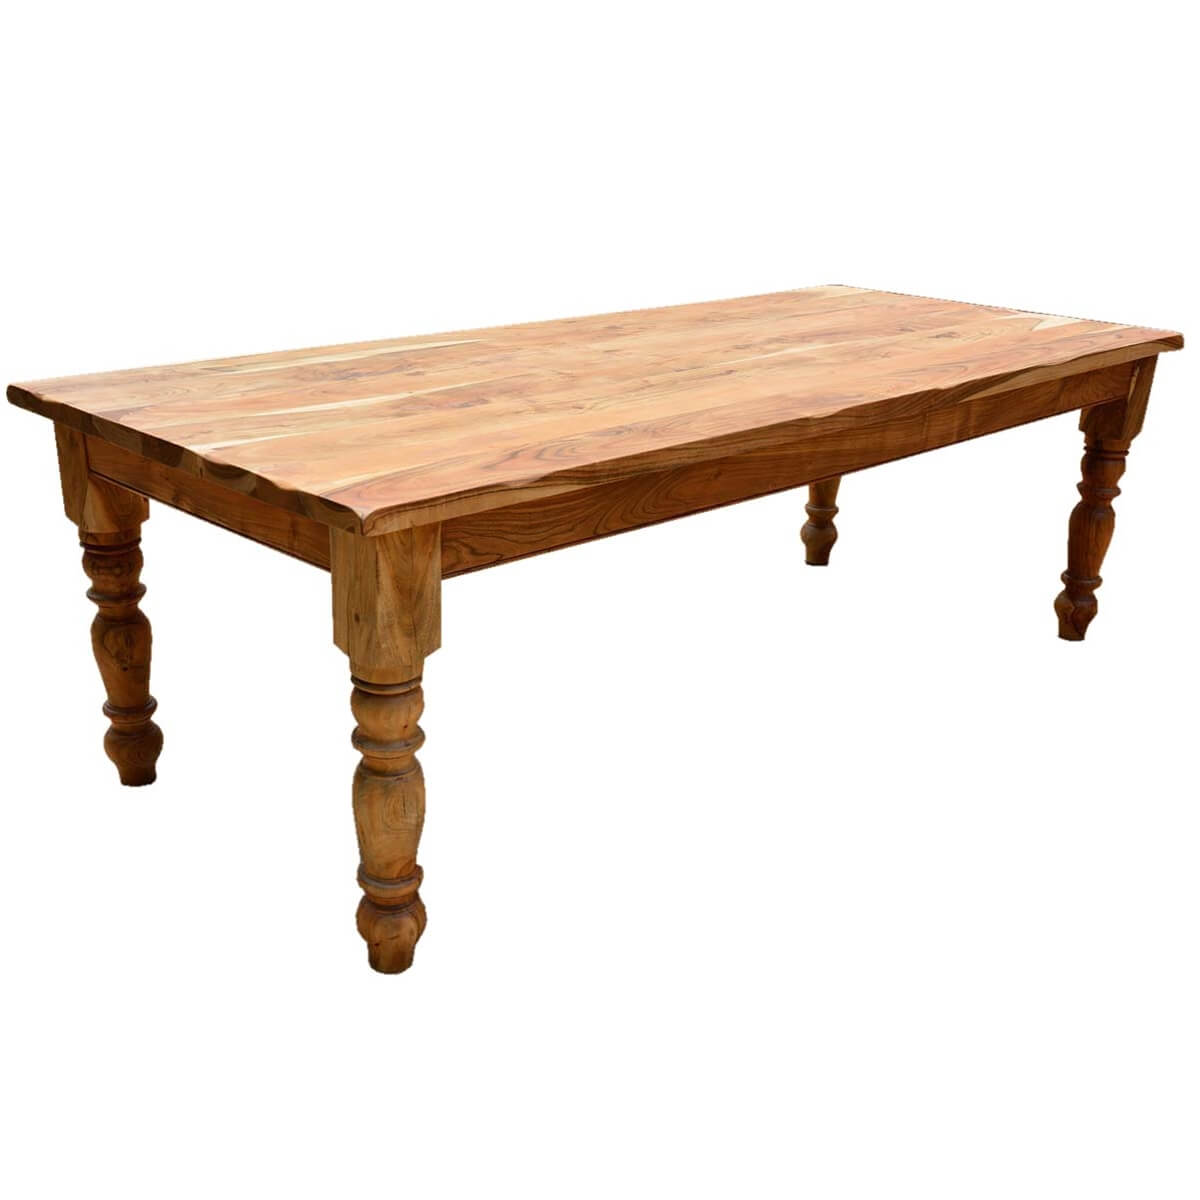 Solid wood farmhouse dining table solid wood vintage for Solid wood furniture